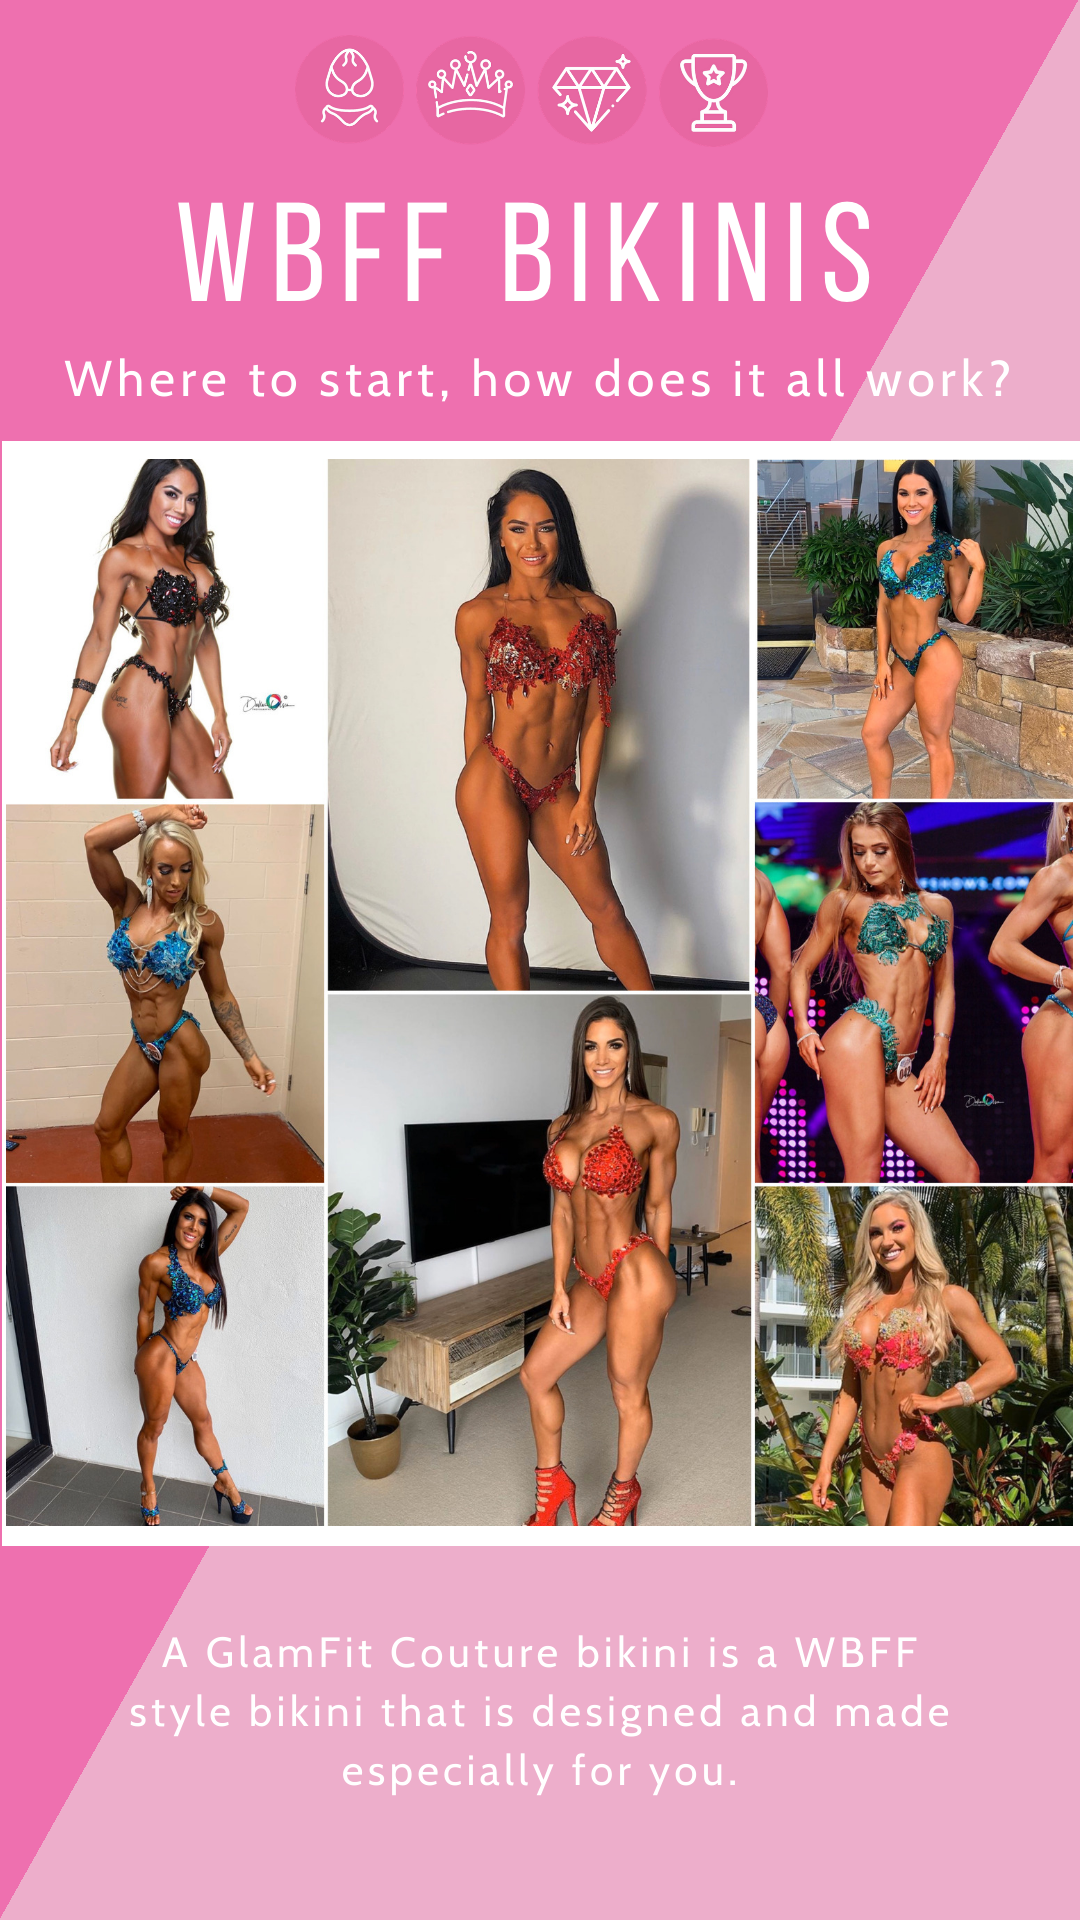 WBFF Bikinis - Where to start, how does it all work?